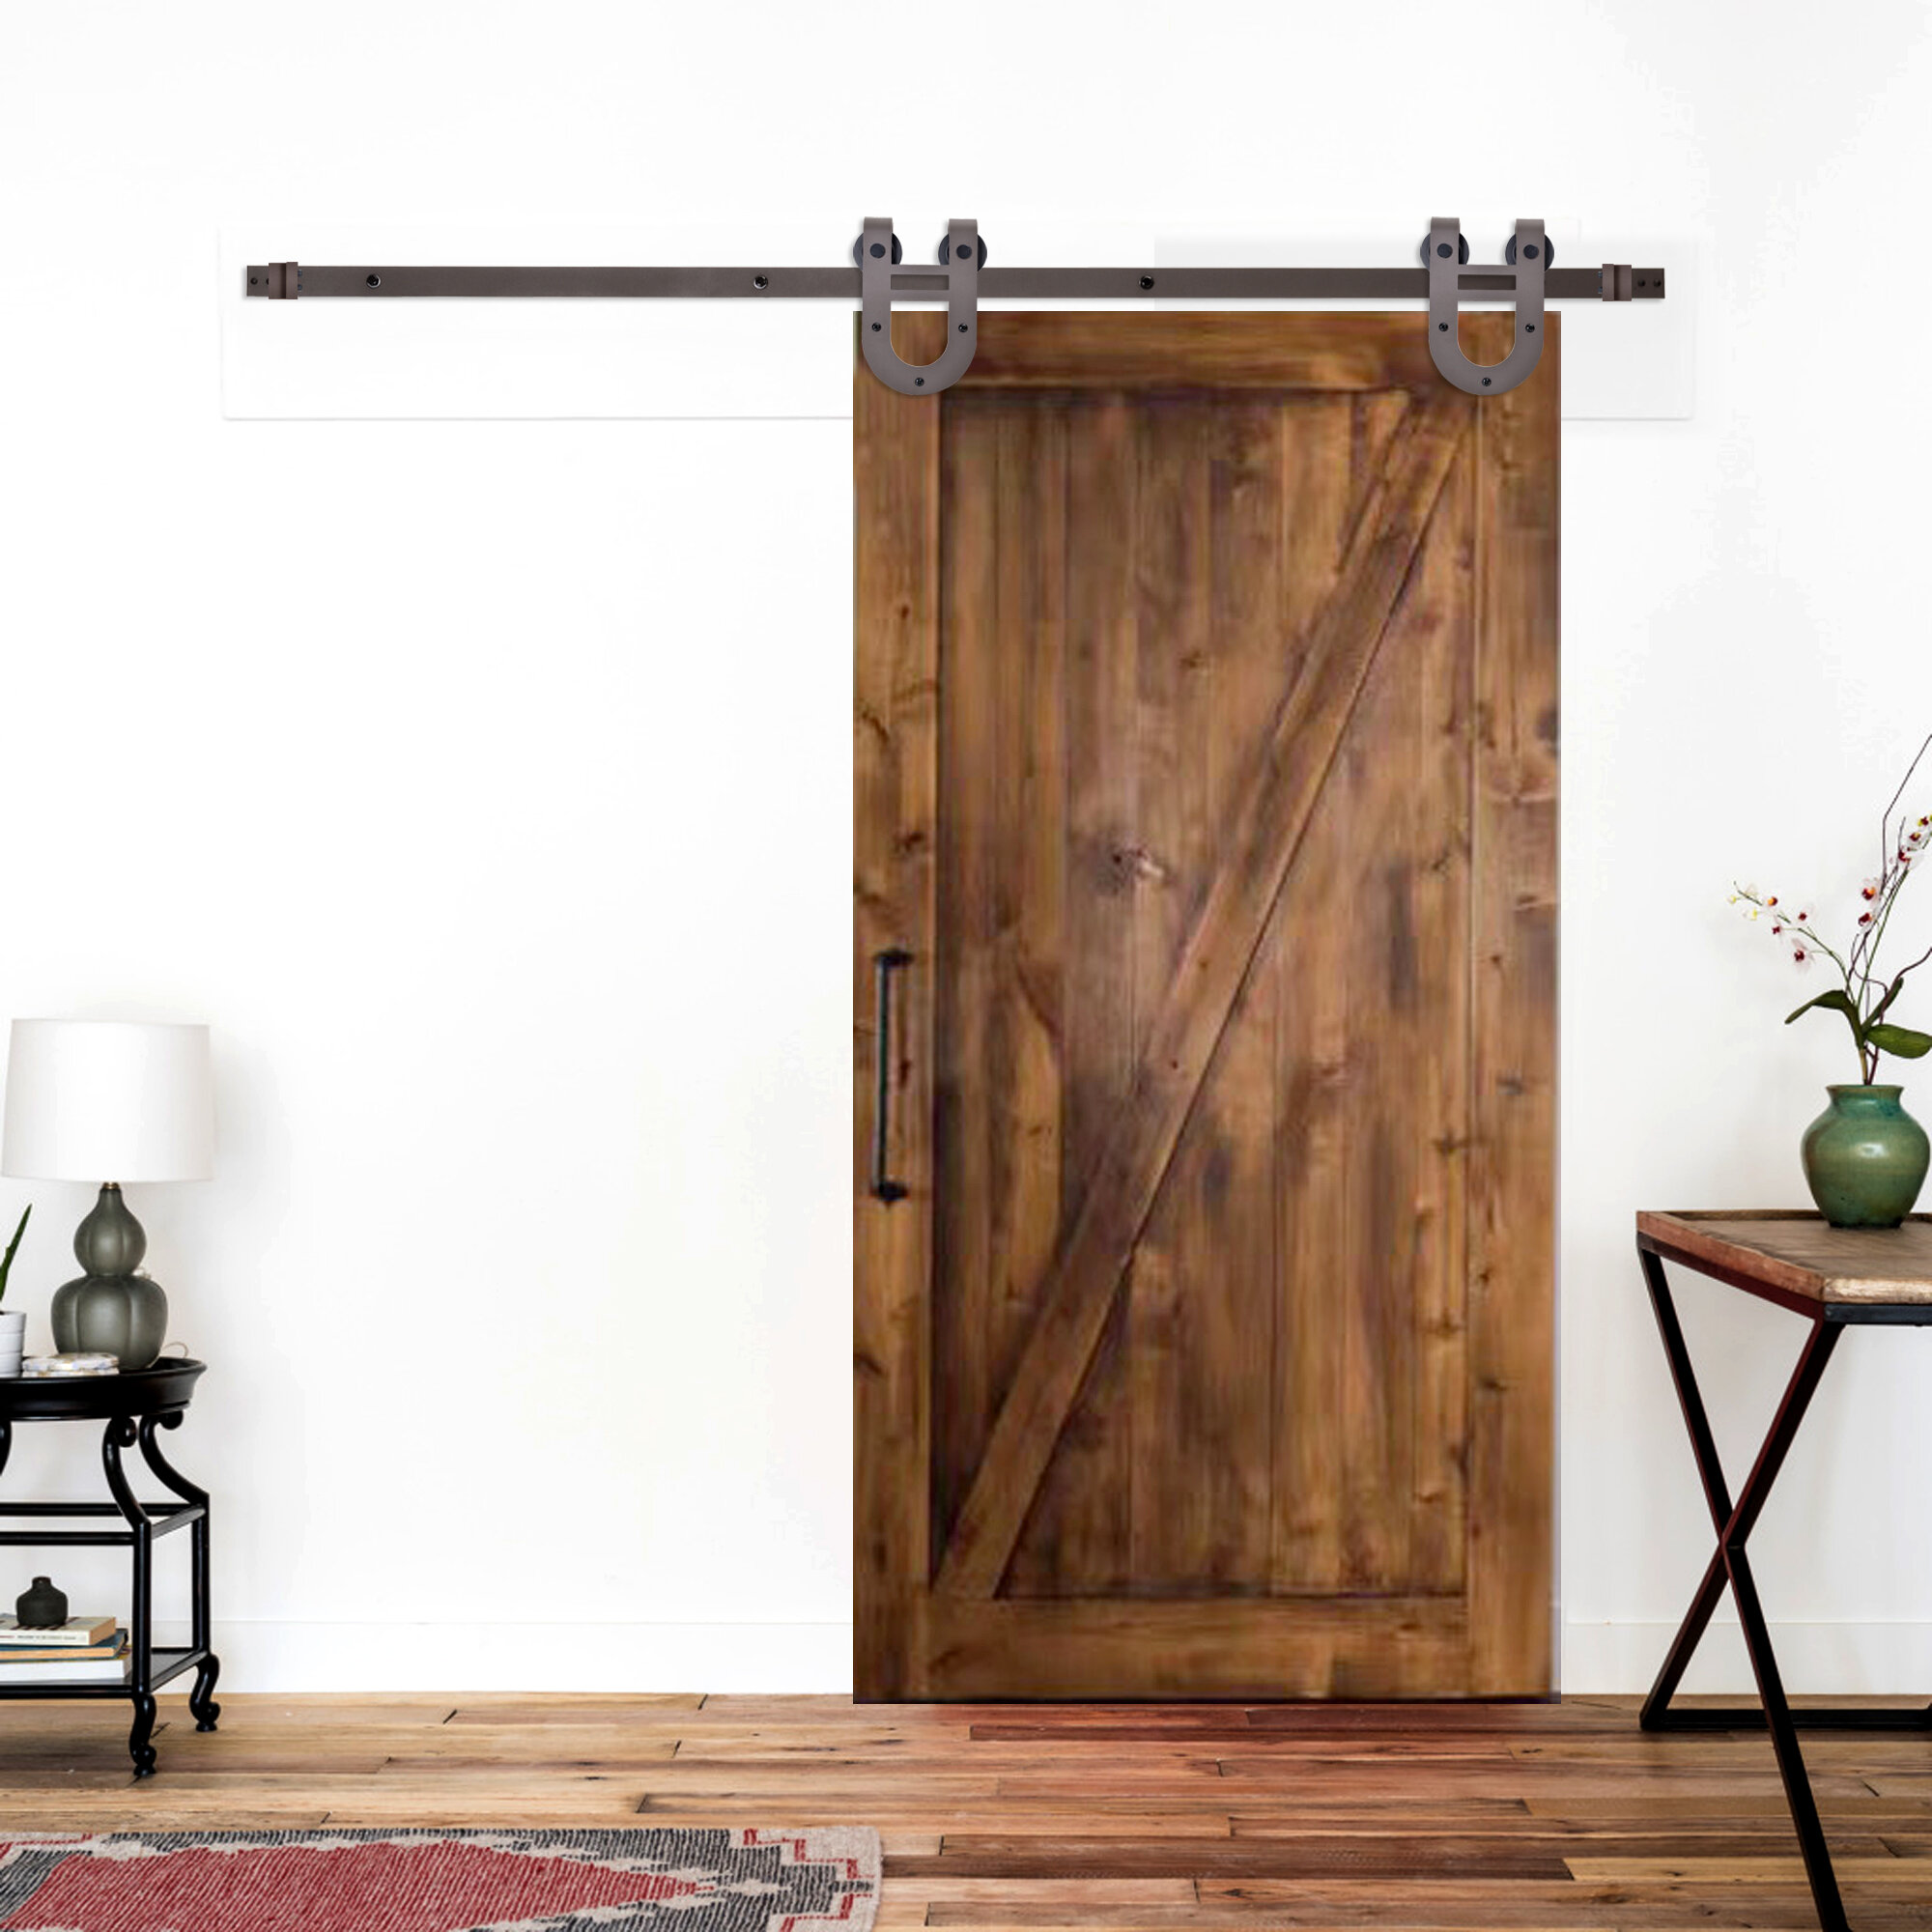 Calhome Classic Horseshoe Sliding Standard Single Track Barn Door Hardware Kit Reviews Wayfair